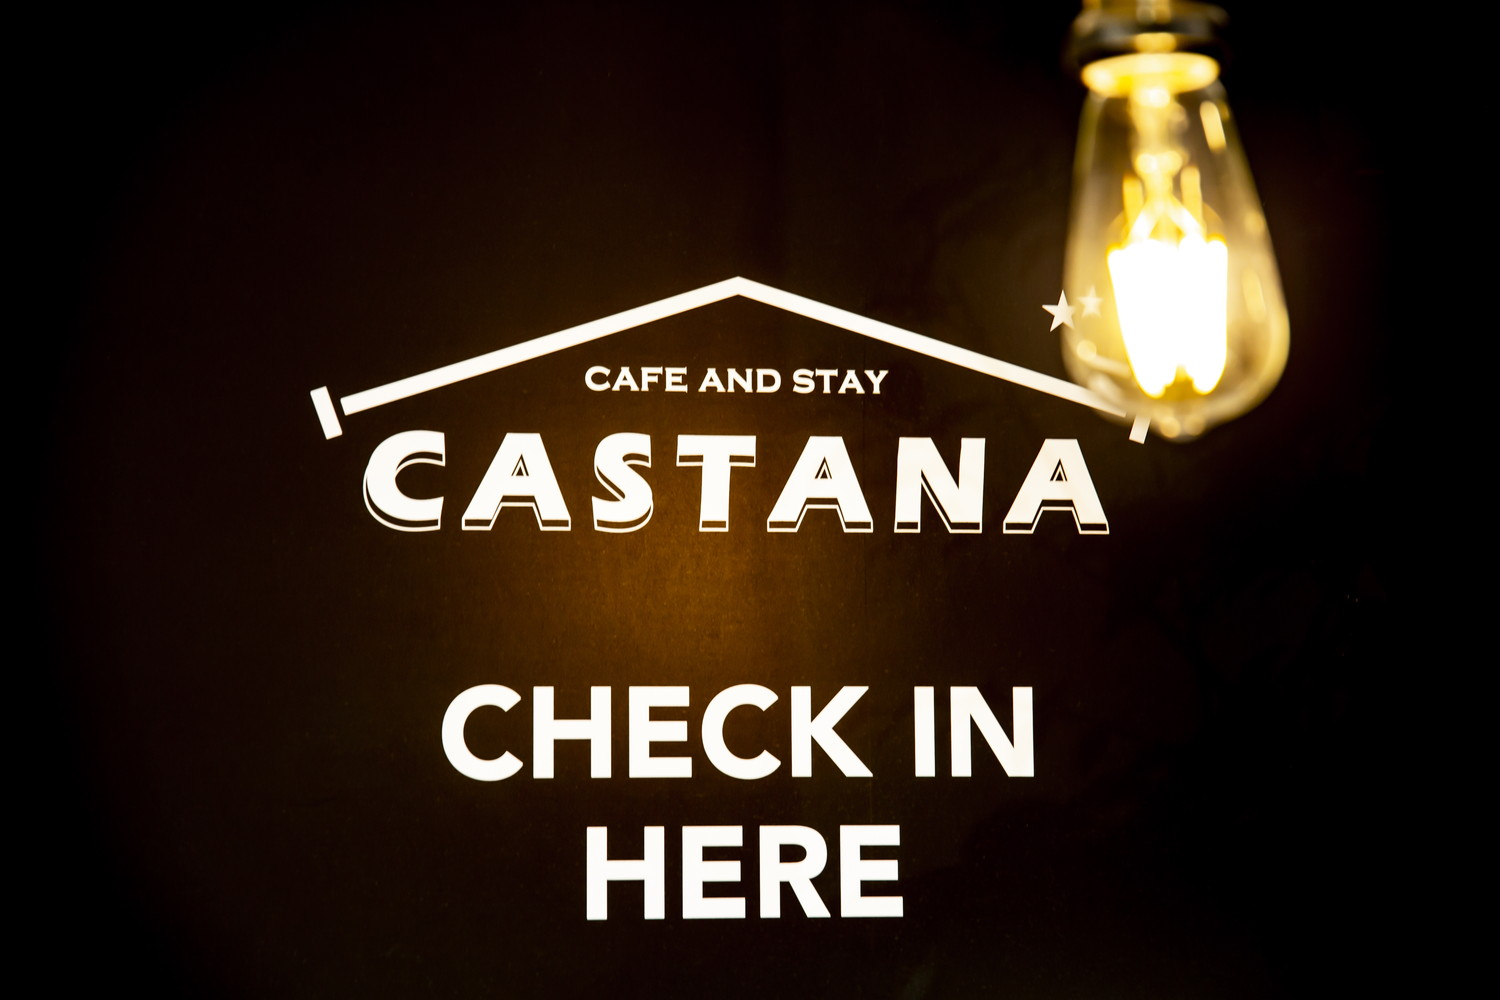 cafe and stay CASTANA